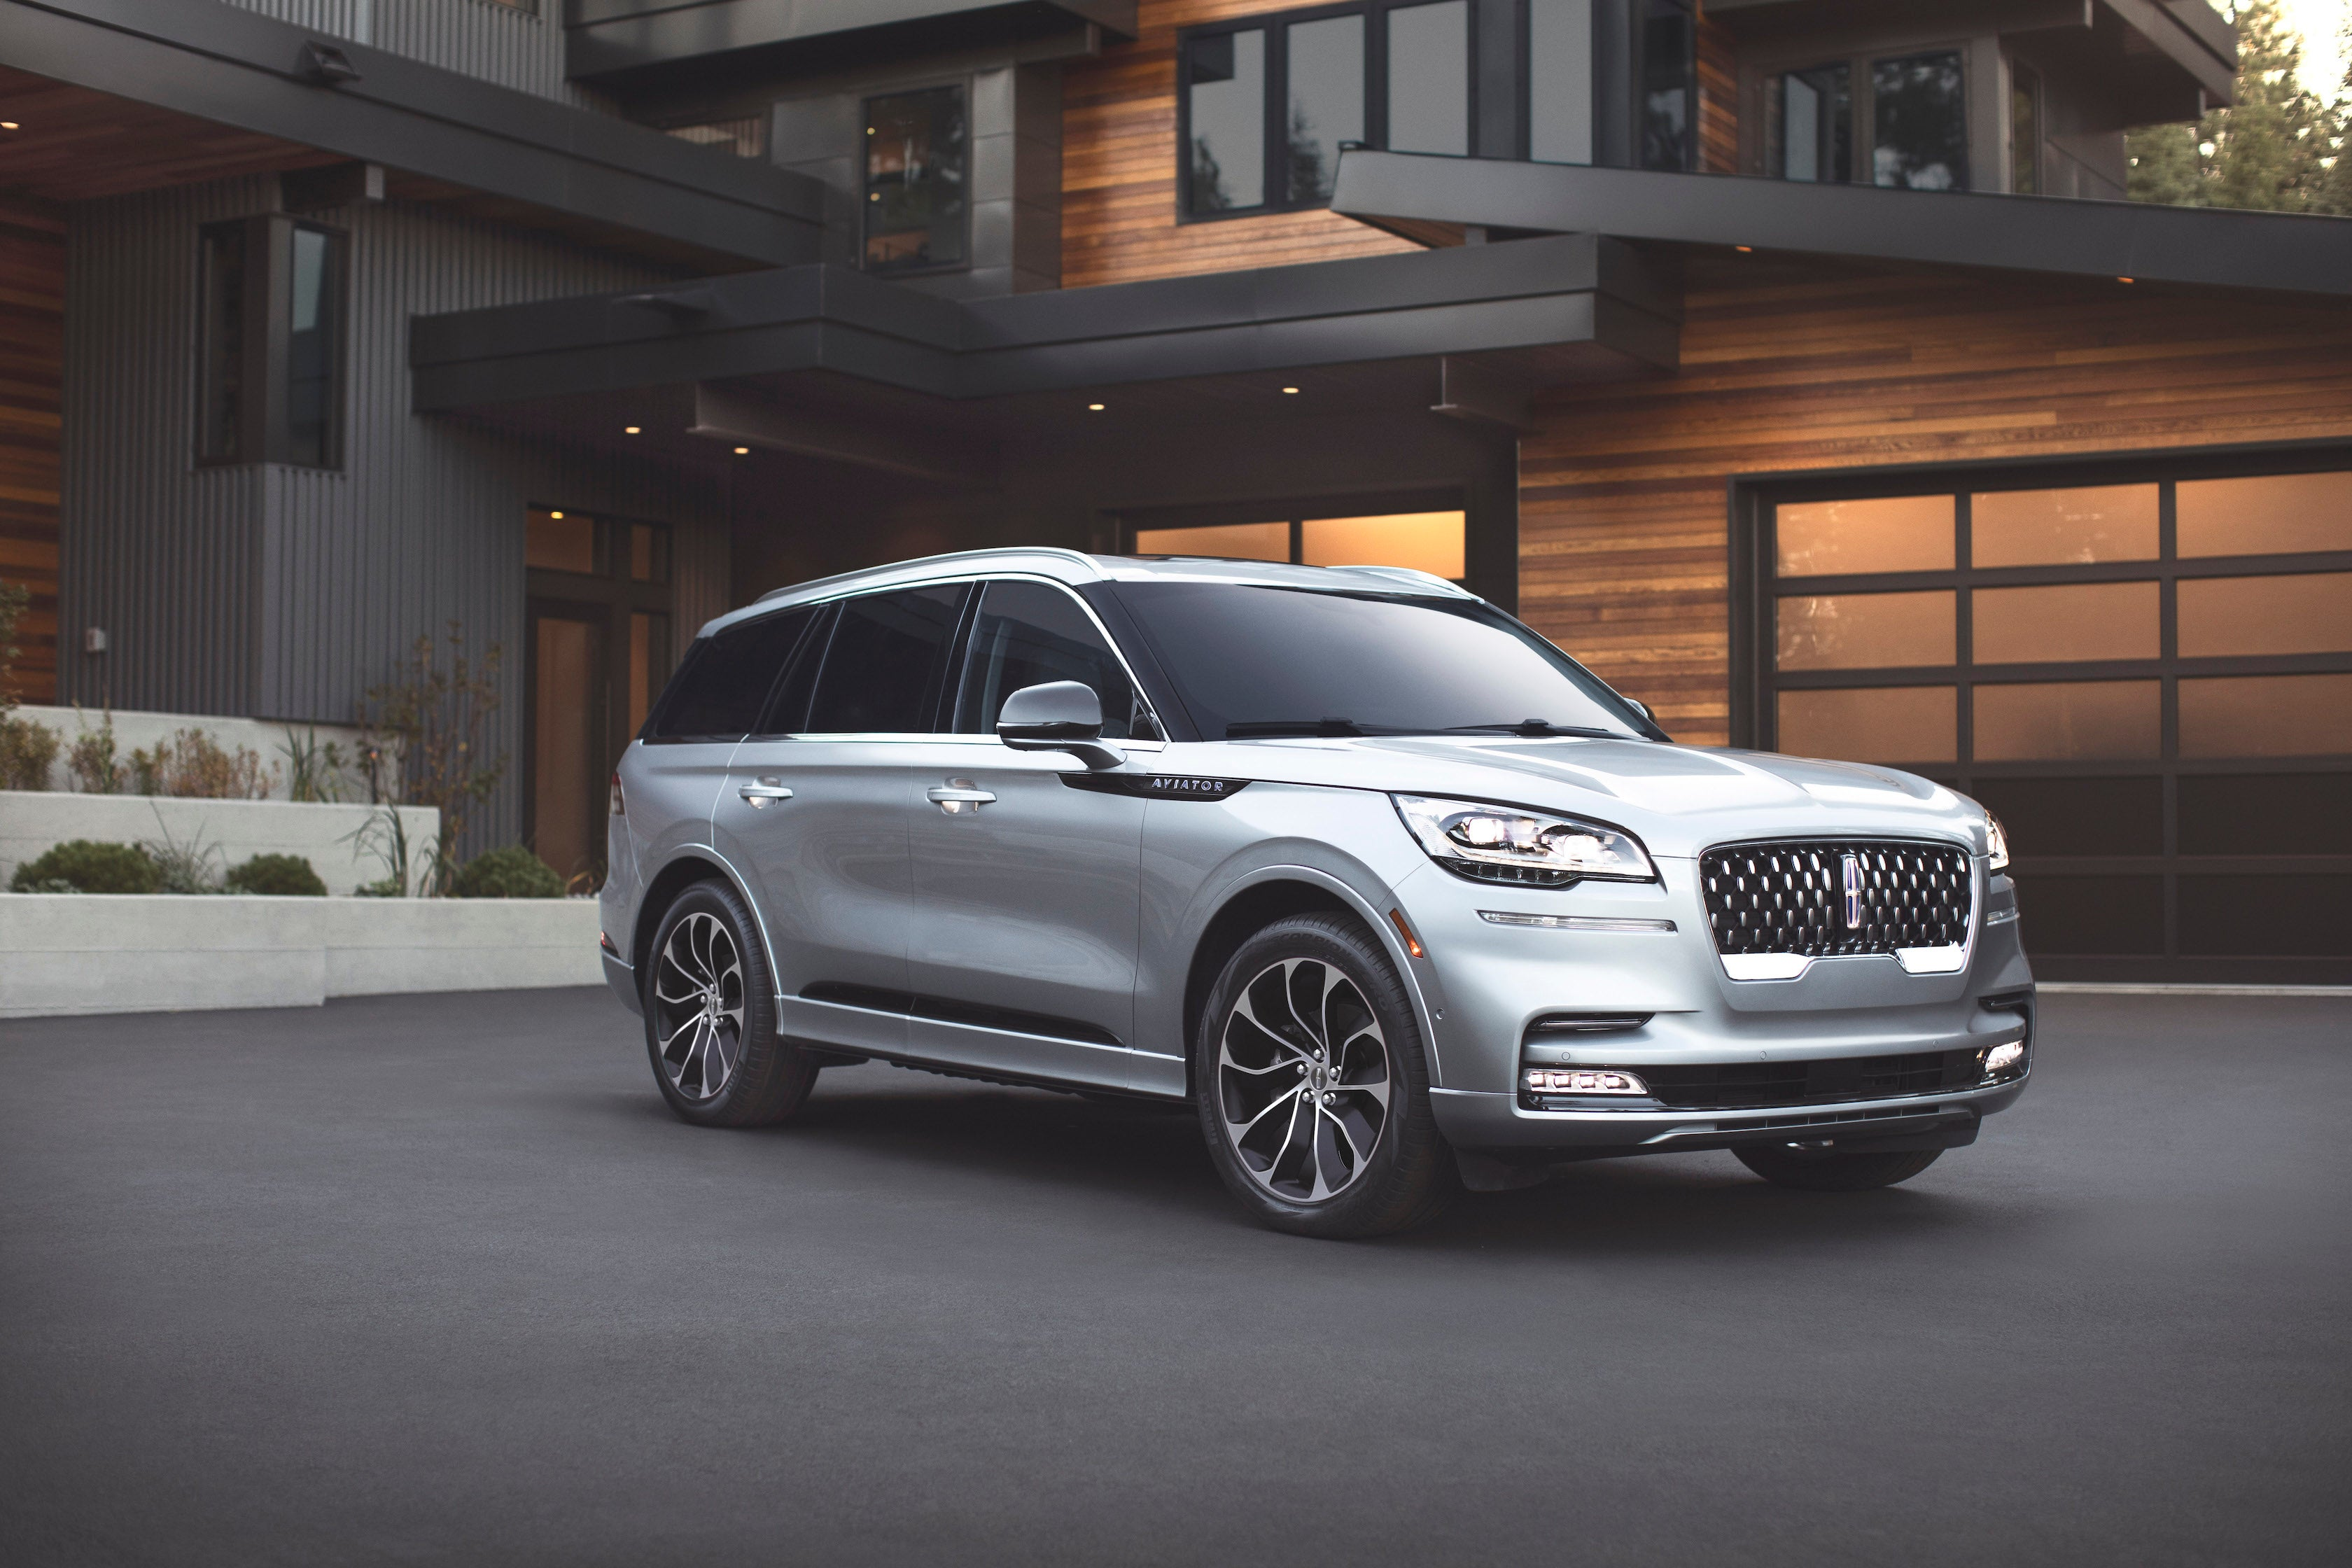 Why The All New 2019 Lincoln Aviator Suv Is A Big Deal For Ford